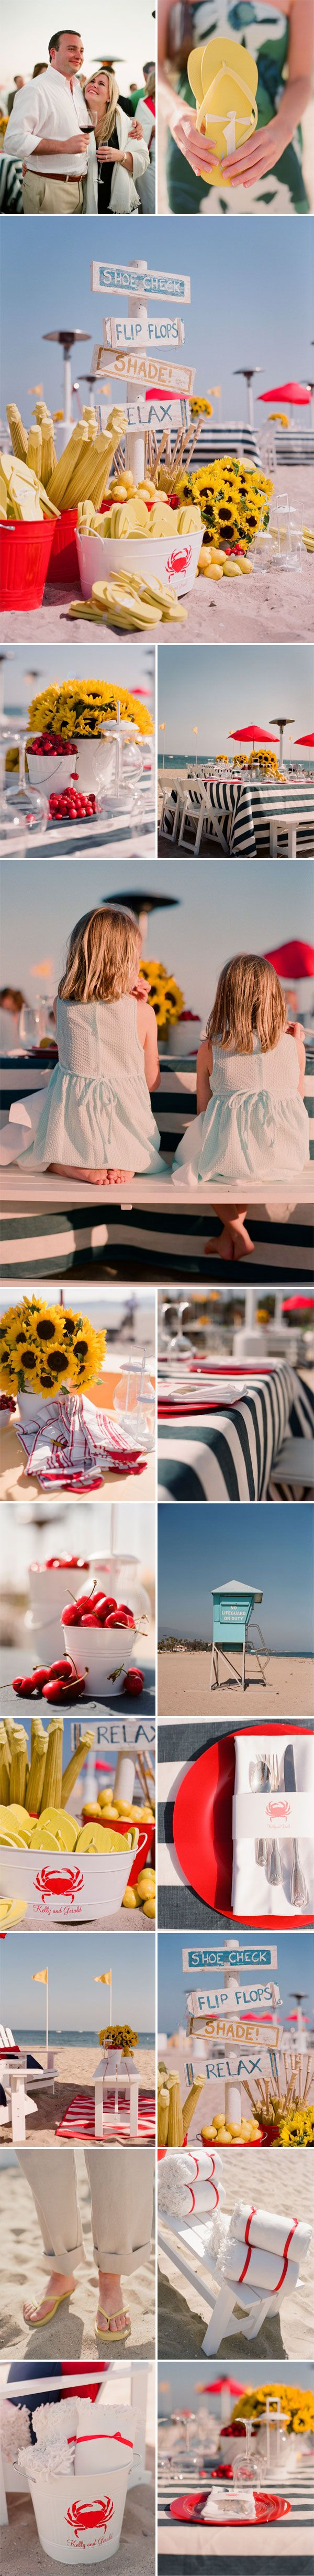 Fun beach wedding ideas!